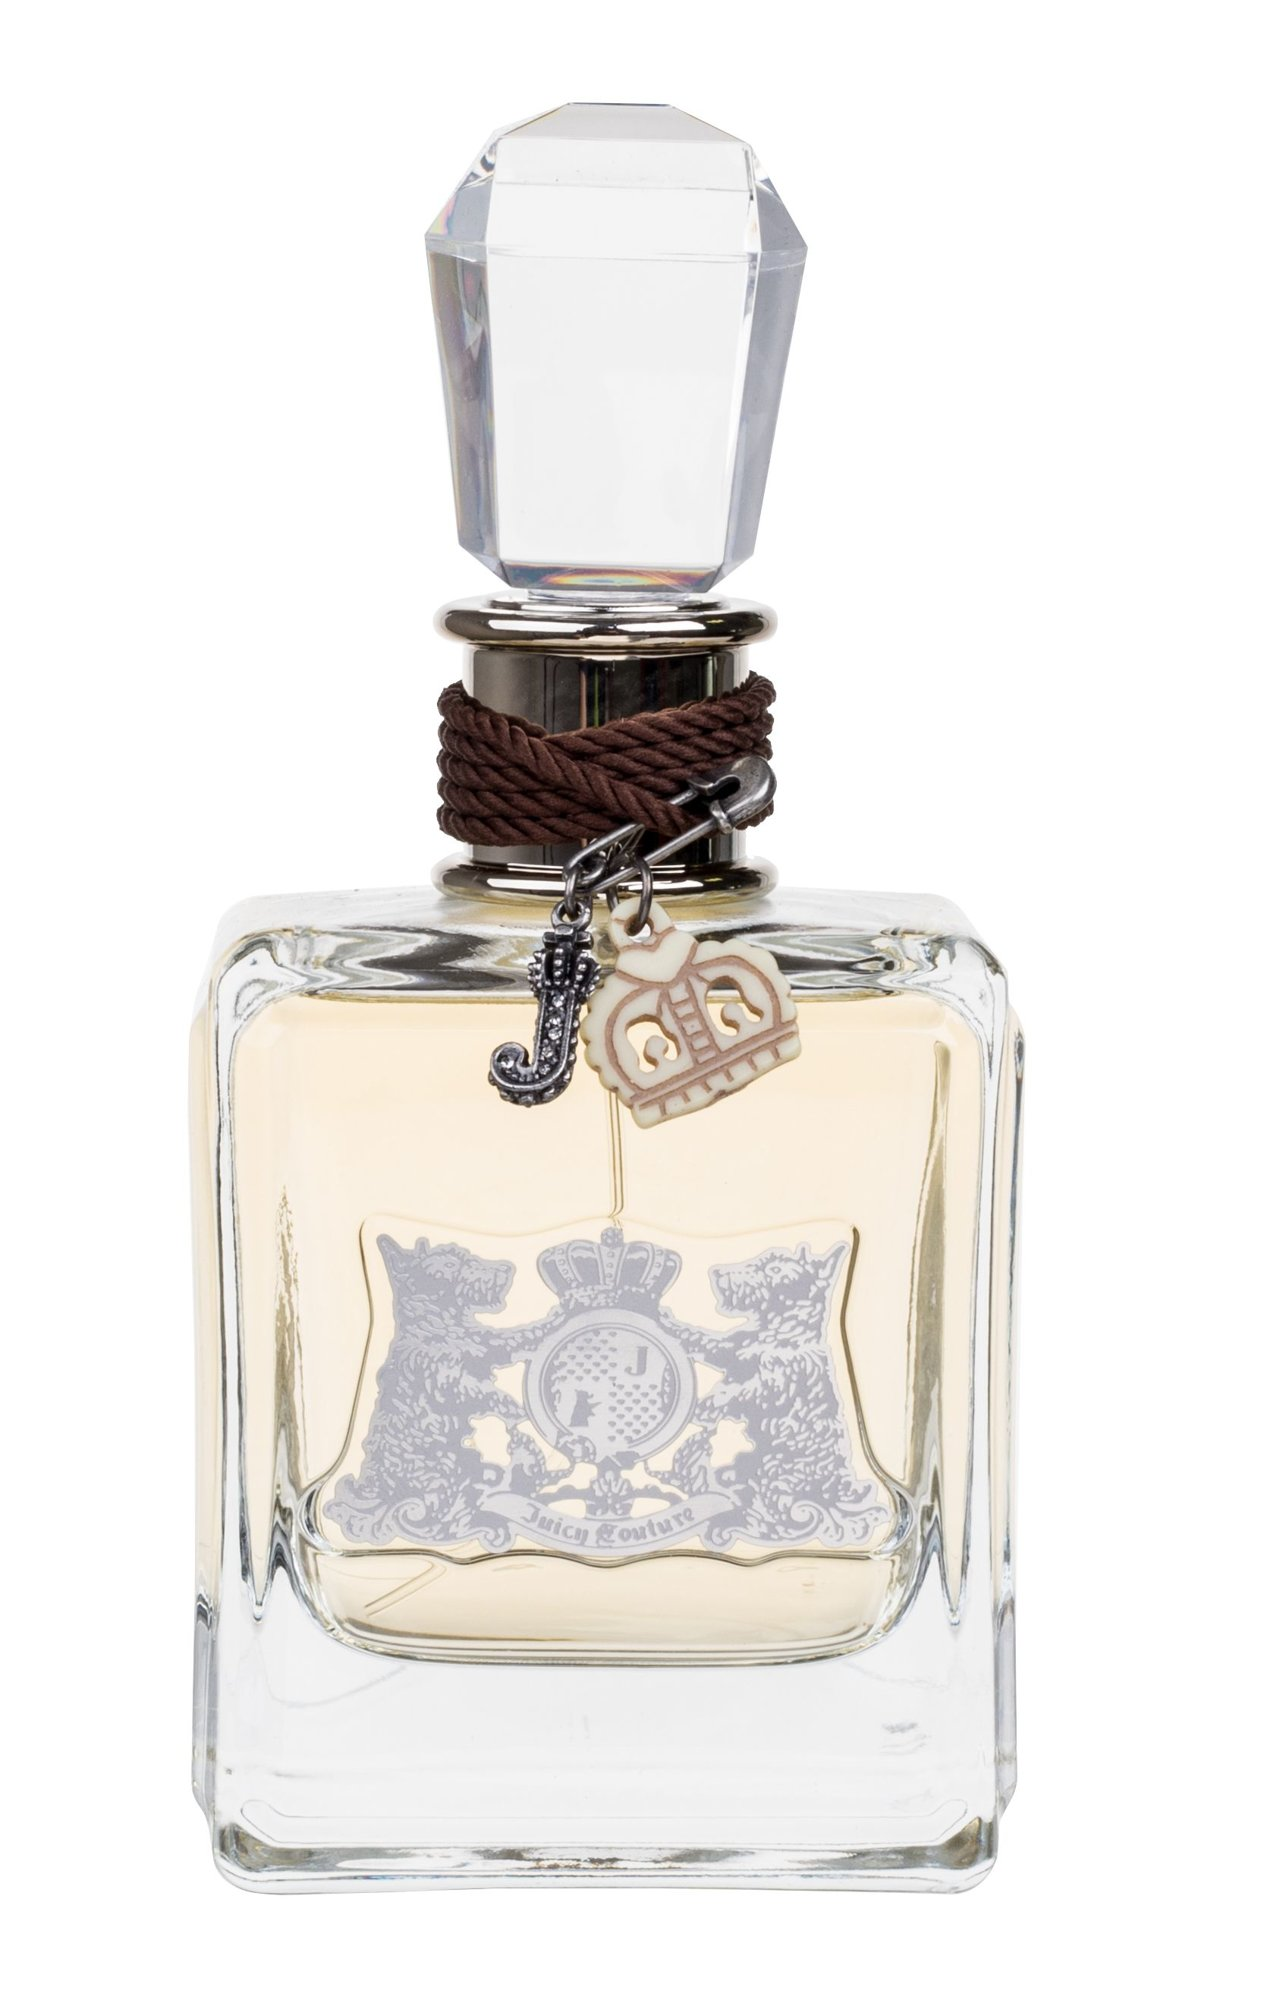 Juicy Couture Juicy Couture EDP 100ml